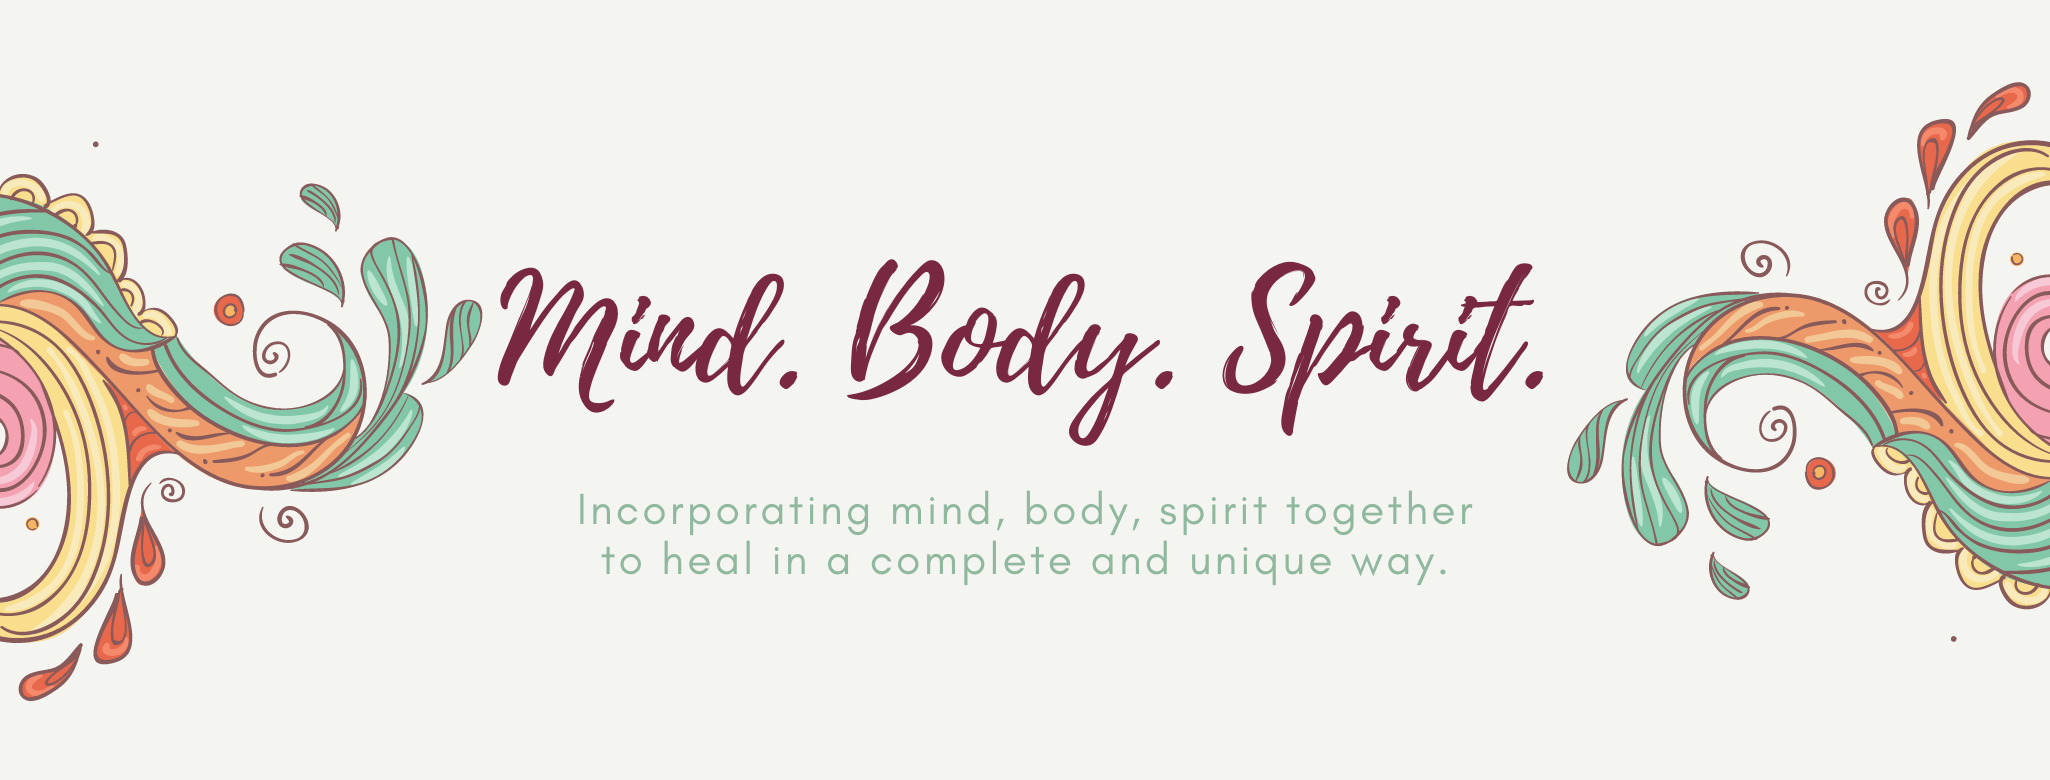 Mind. Body. Spirit.